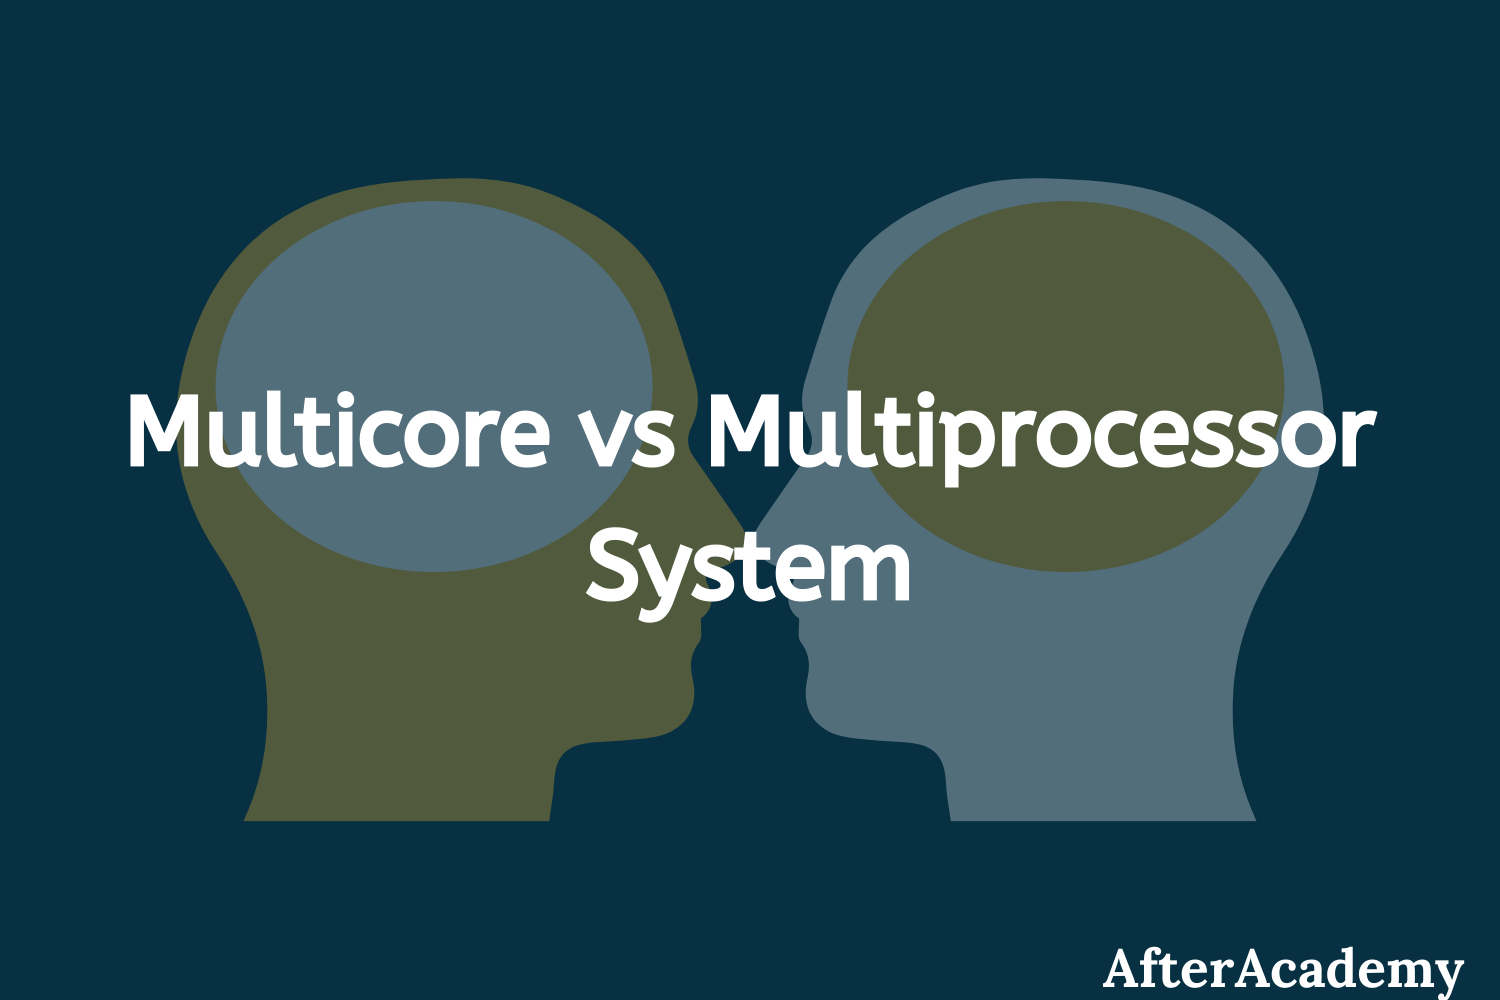 What is the difference between a Multicore System and a Multiprocessor System?